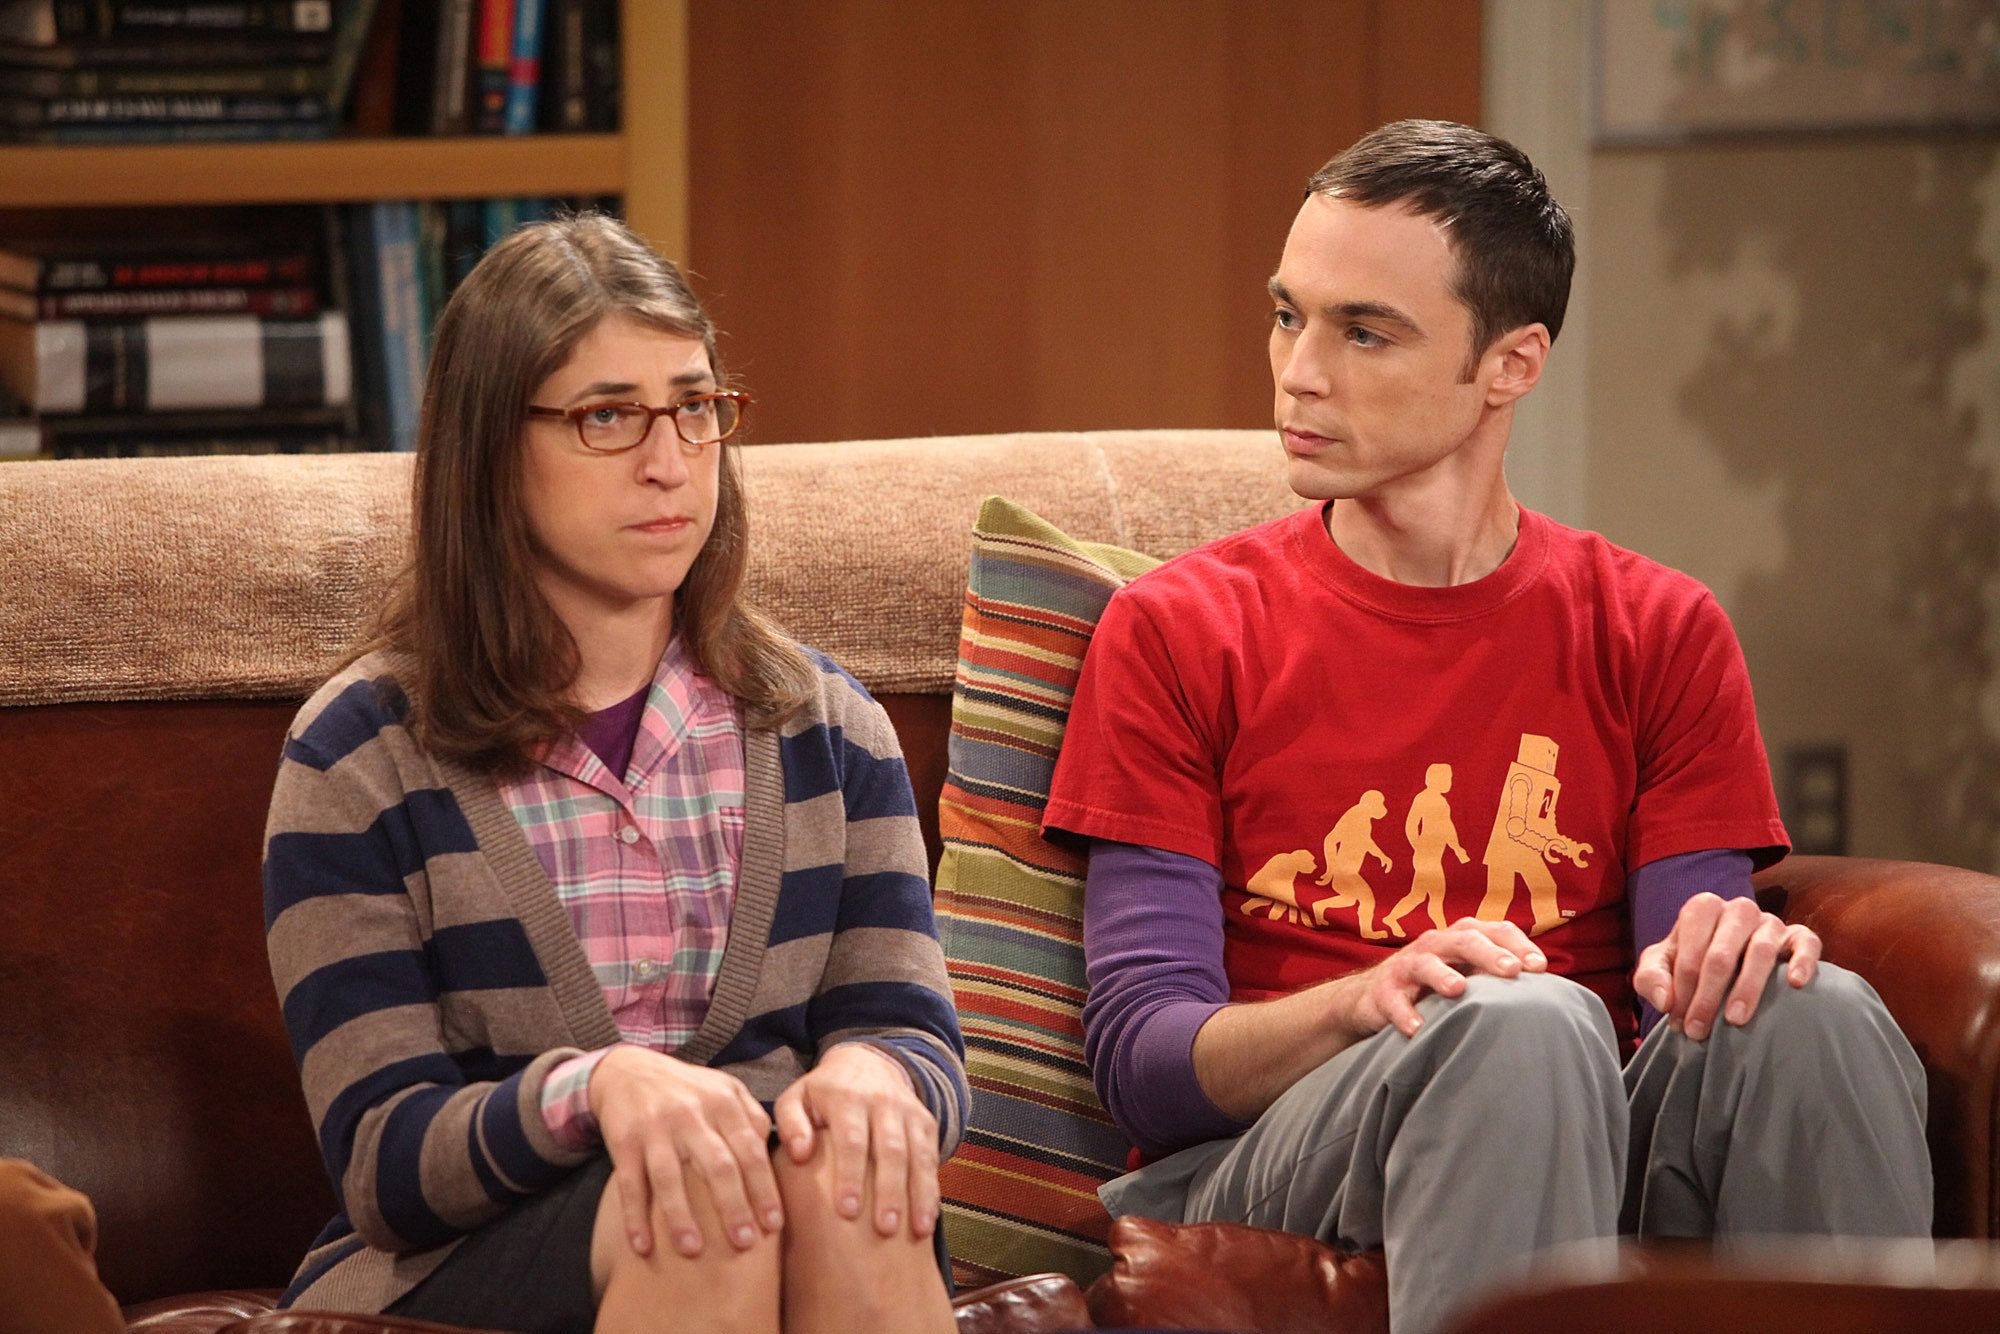 LOS ANGELES - AUGUST 23: 'The Zazzy Substitution' -- The guys are concerned as Sheldon (Jim Parsons, right) searches for an alternative to human companionship with Amy Farrah Fowler (Mayim Bialik, left), on THE BIG BANG THEORY, Thursday, Oct. 7 (8:00-8:31 PM, ET/PT) on the CBS Television Network.(Photo by Richard Cartwright/CBS via Getty Images)